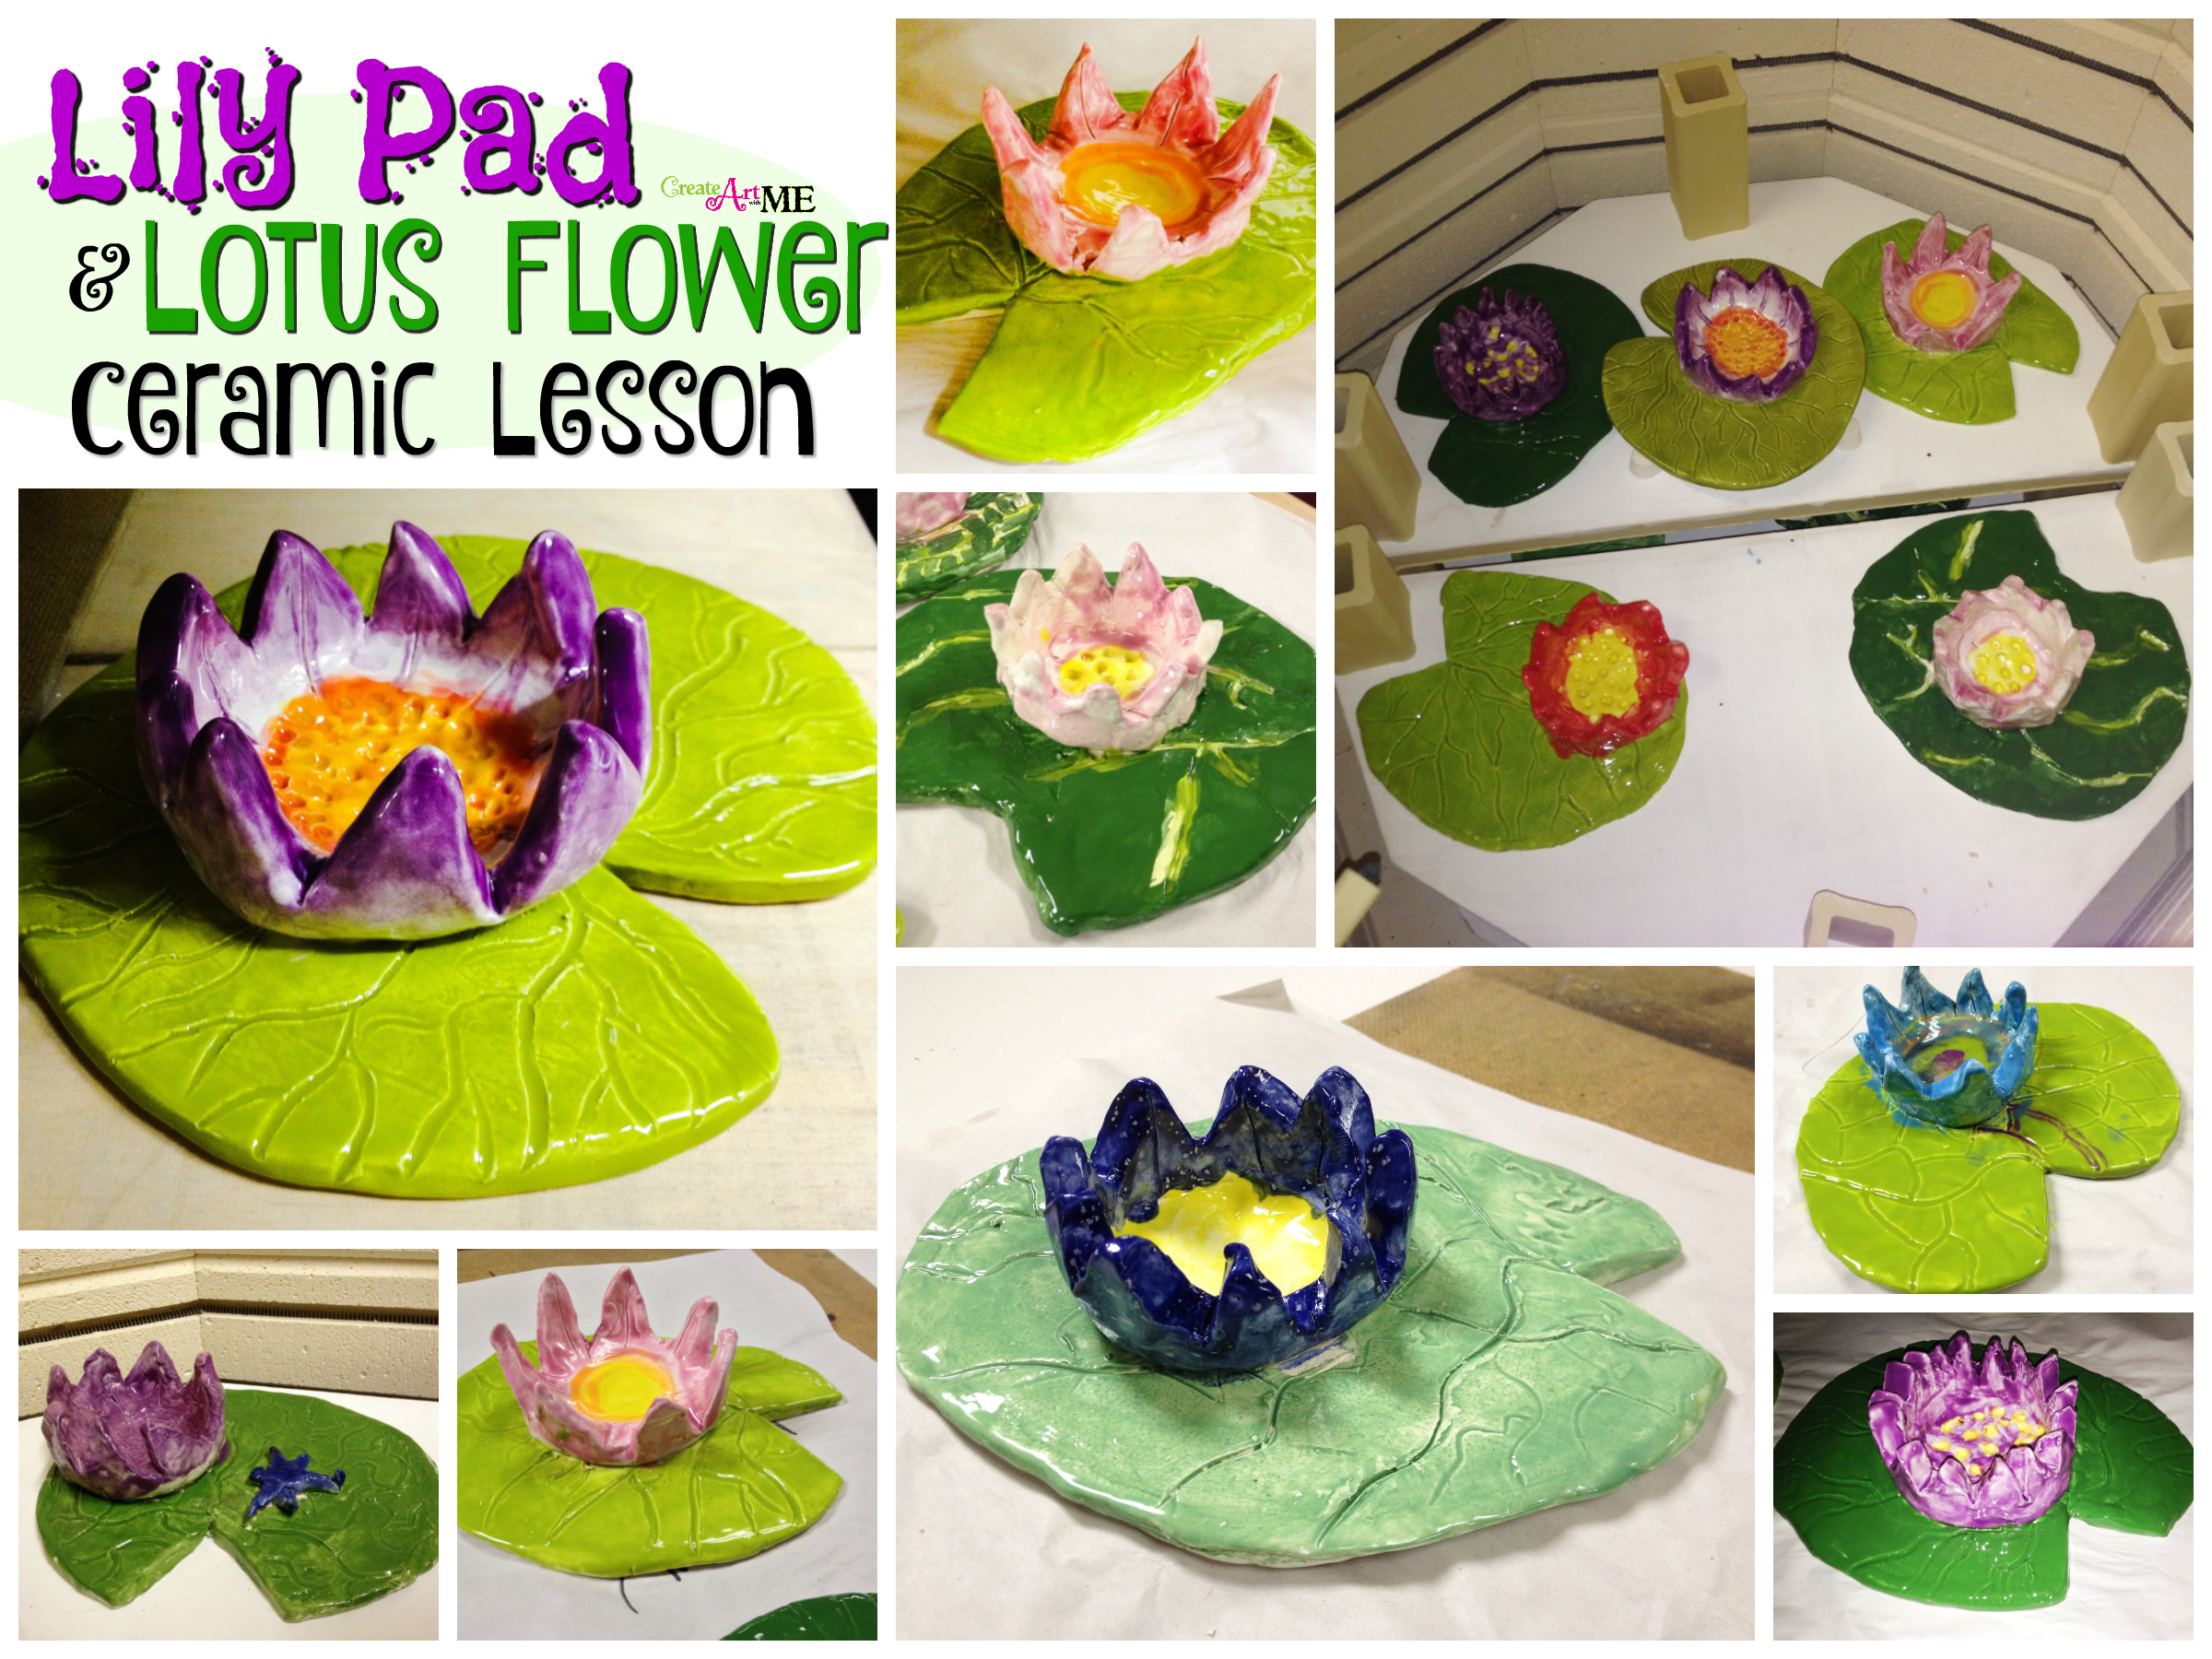 Lilypad lotus flower ceramics lesson create art with me i love ceramics this lesson is adorable lily pad lotus flower ceramics lesson is targeted for elementary 2nd 5th grade and teaches both slab pinch izmirmasajfo